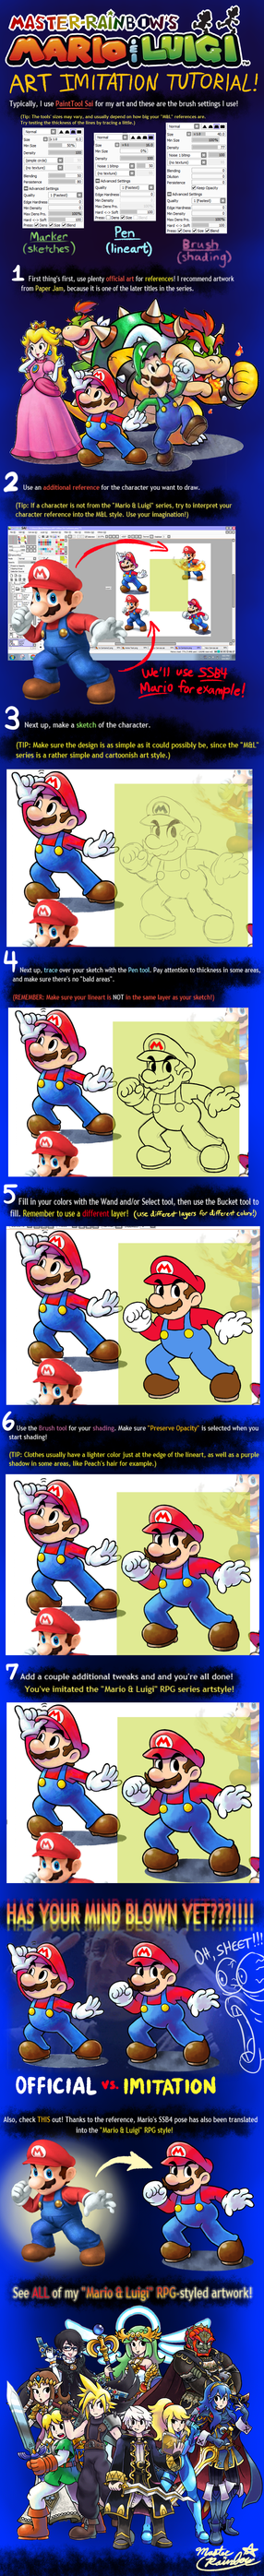 'Mario+Luigi' RPG ART IMITATION TUTORIAL by Master-Rainbow